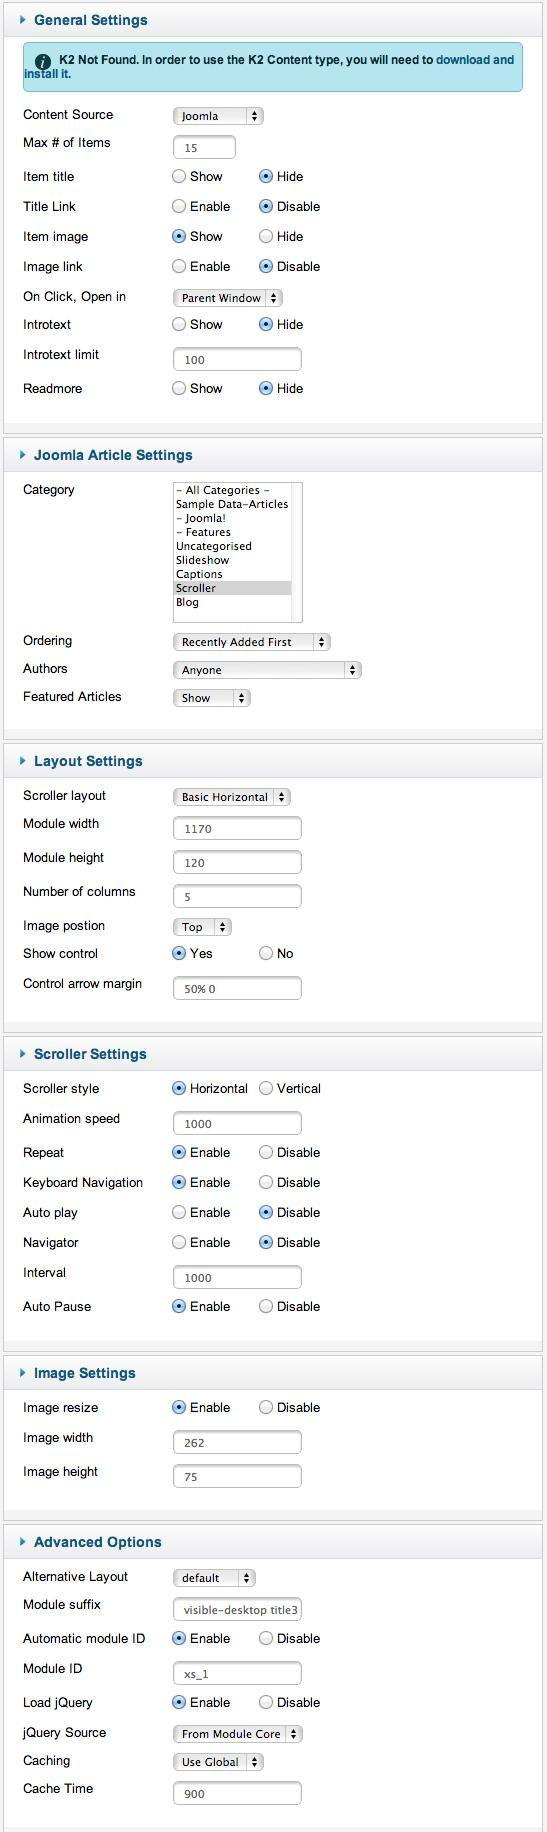 xpert scroller settings